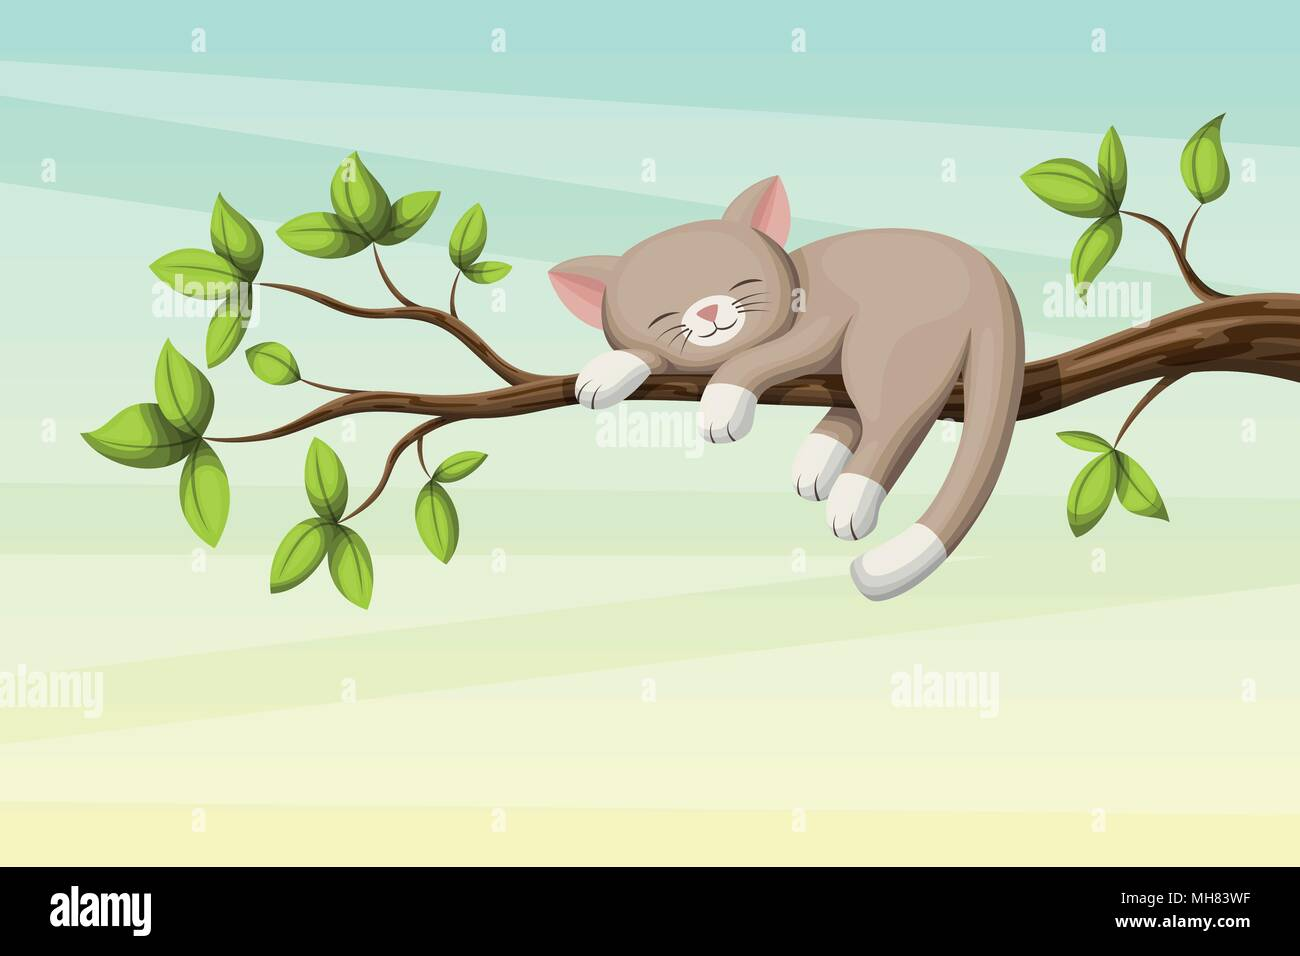 Little Cat ist sleeping on a branch with leaves - Stock Image